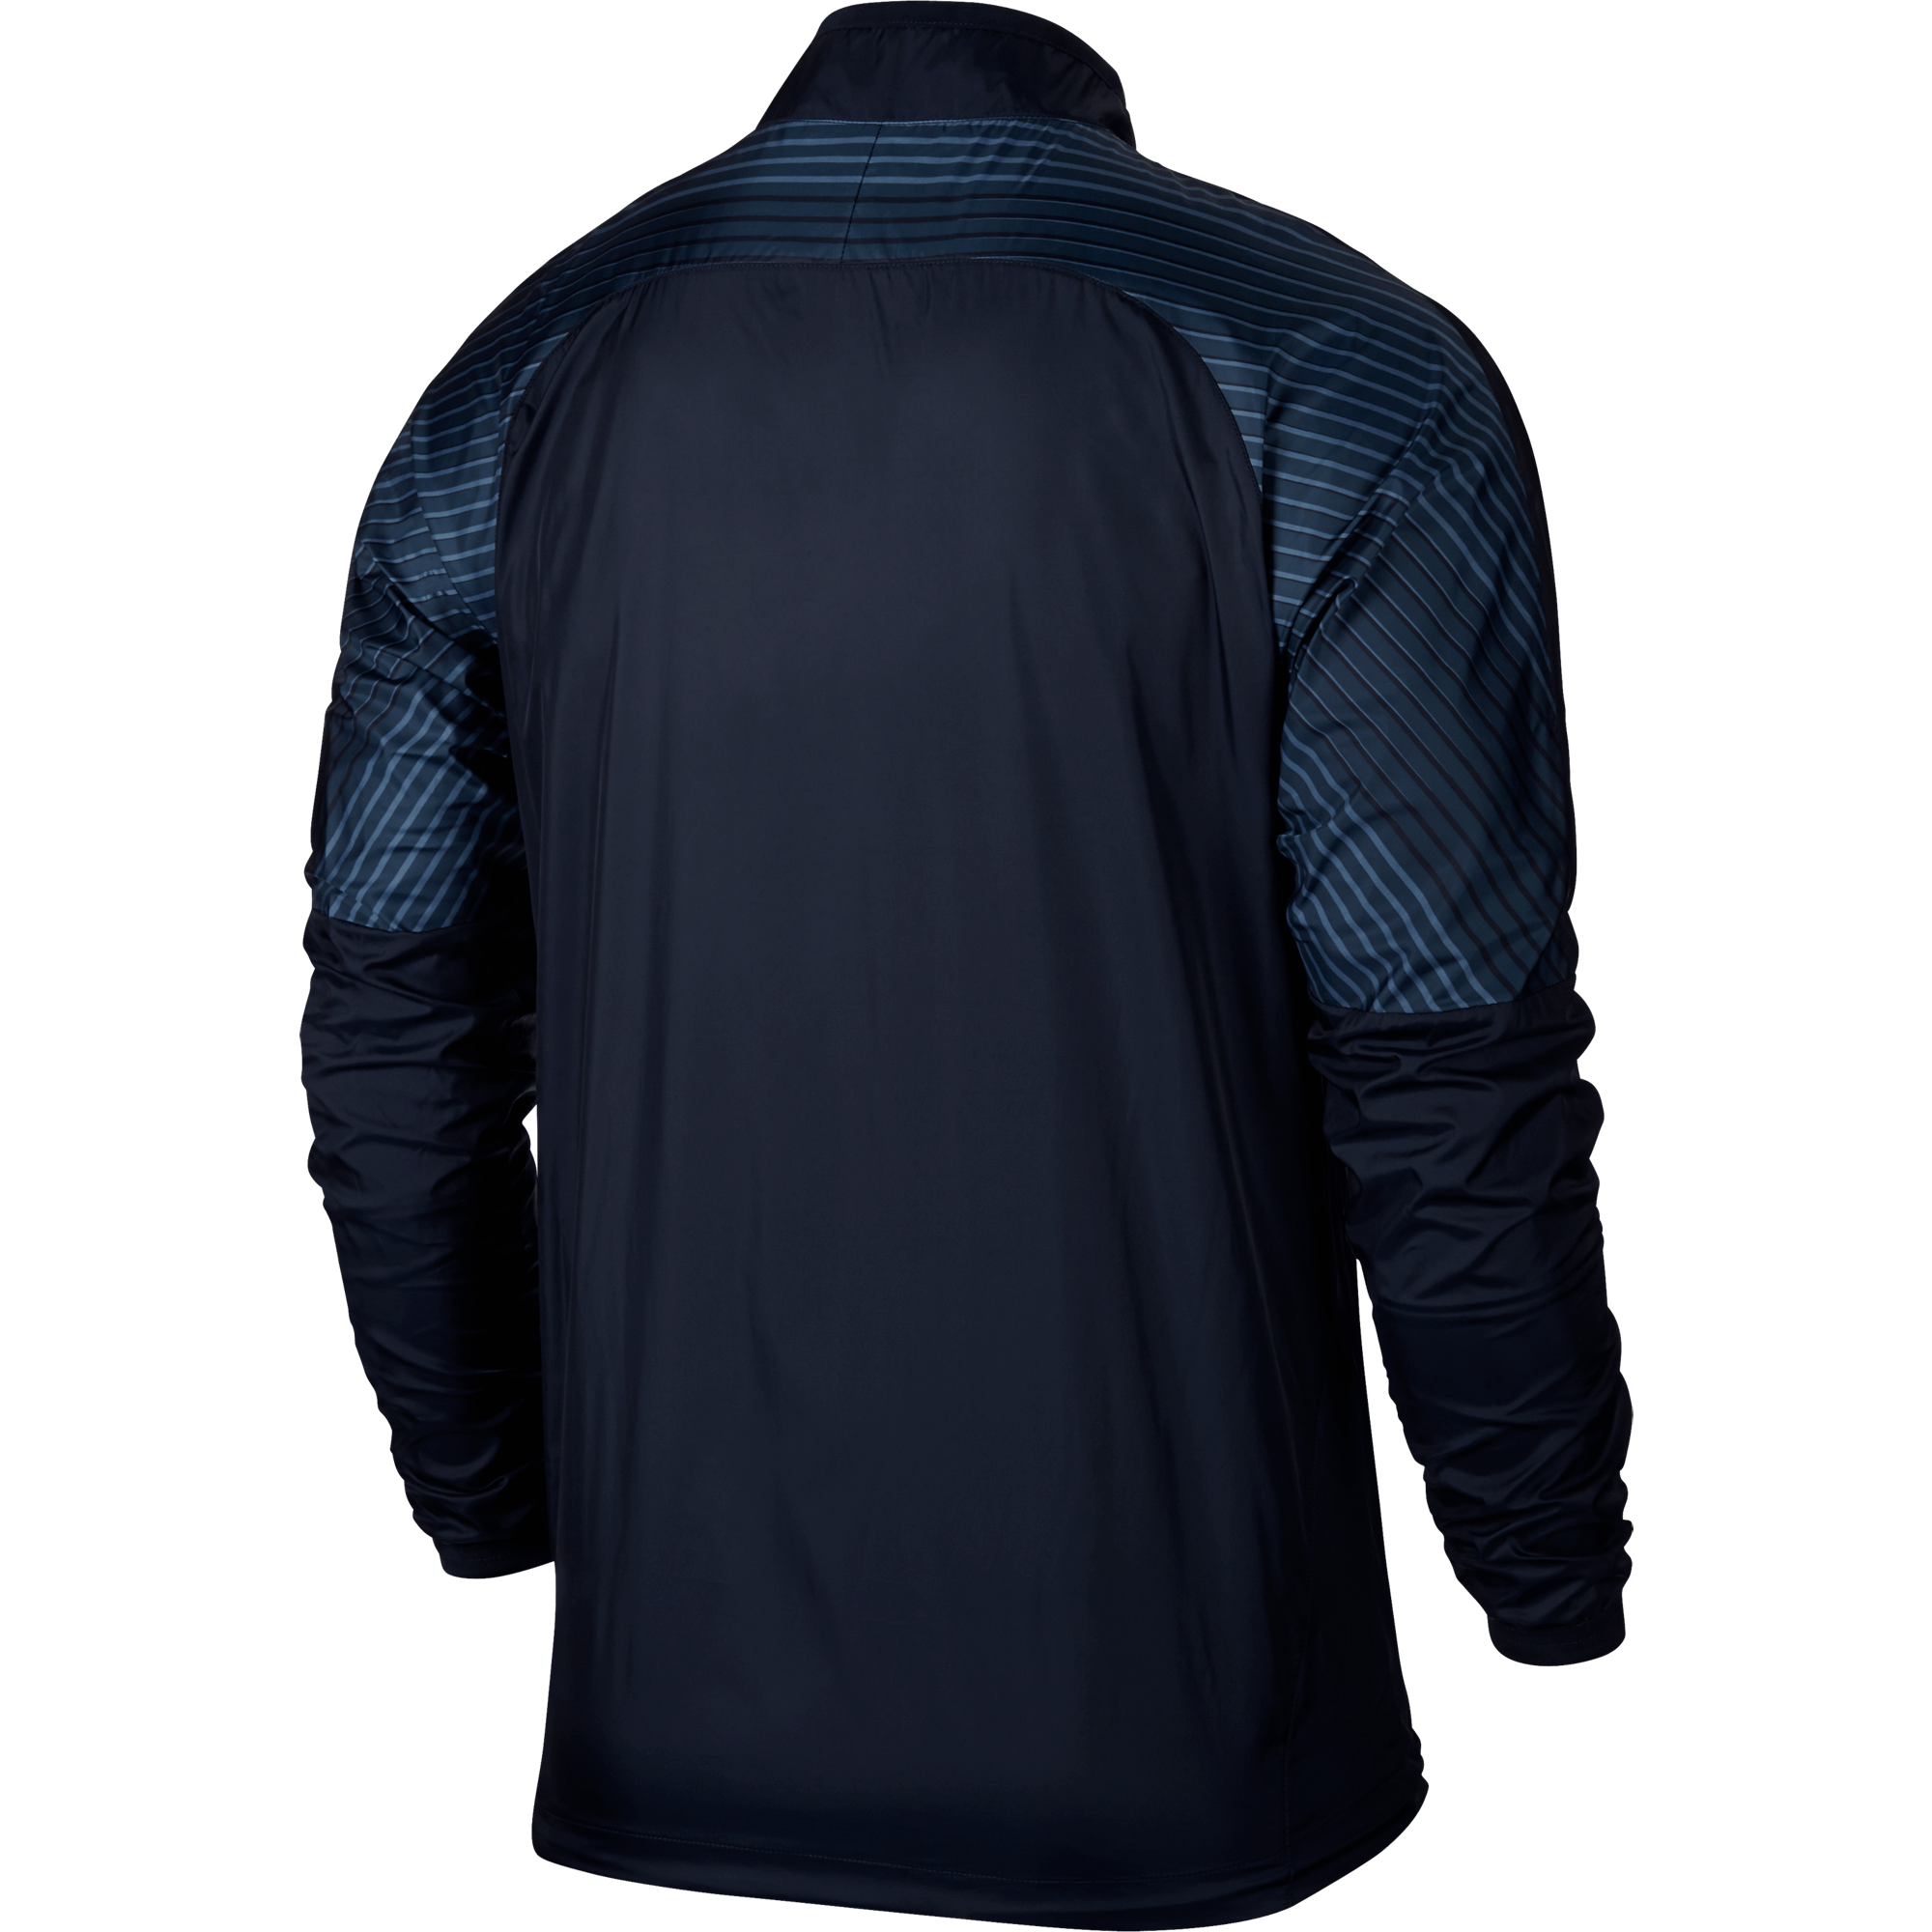 Nike Revolution Graphic Woven Jacket – Donkerblauw achterkant jacket